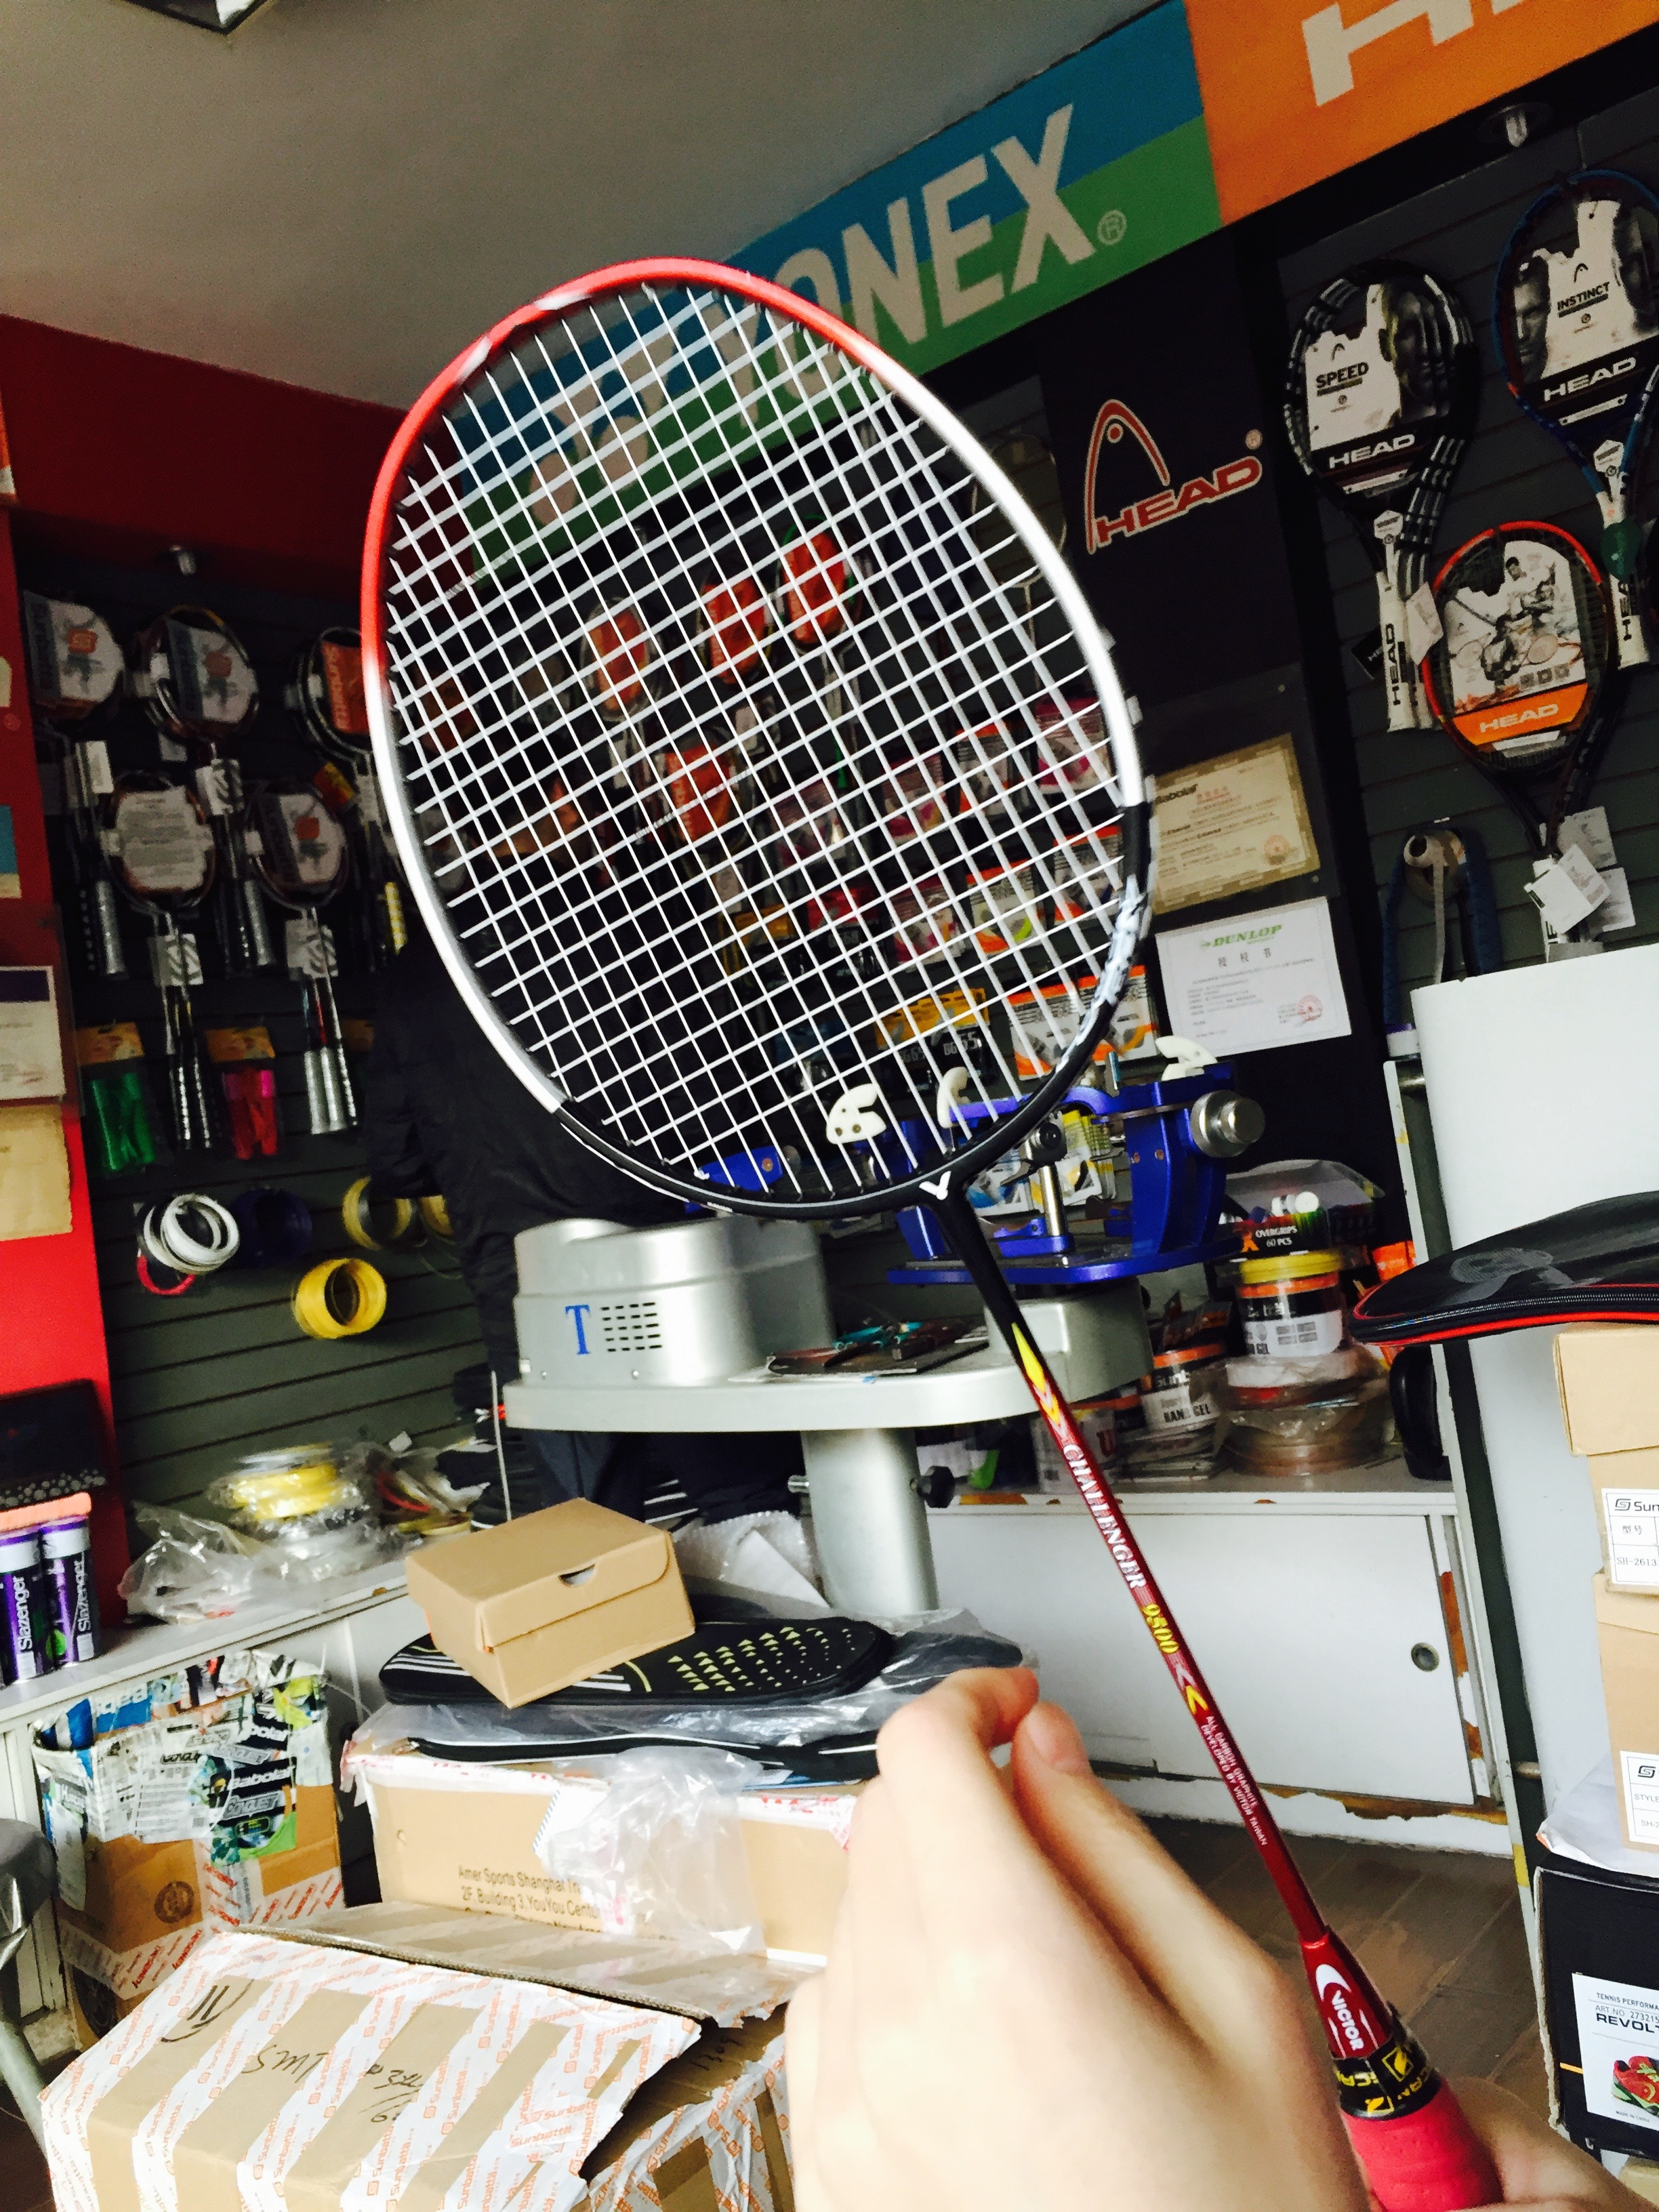 I went with my friend Xiao He to get his rackets restrung a few weeks ago. I got to watch the whole process.